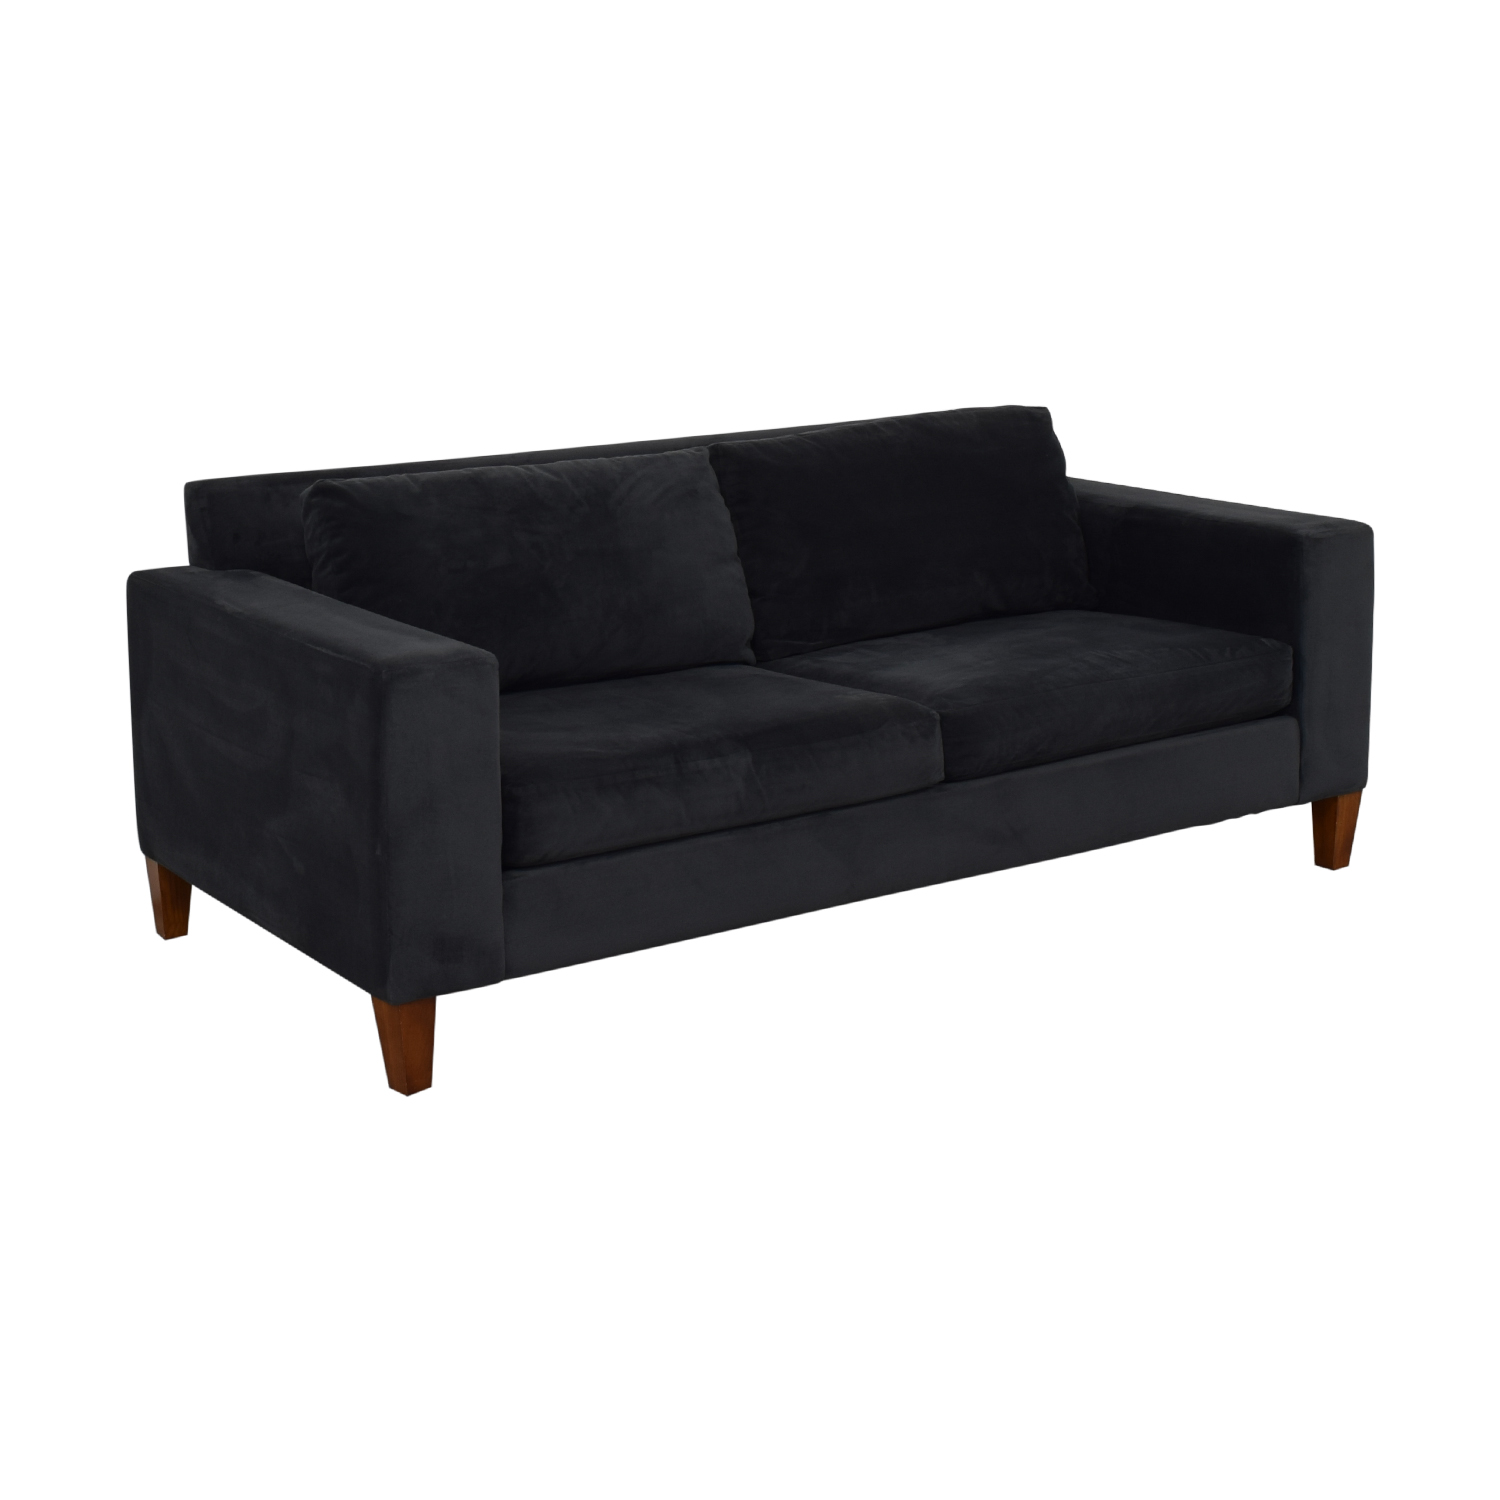 West Elm West Elm York Sofa used